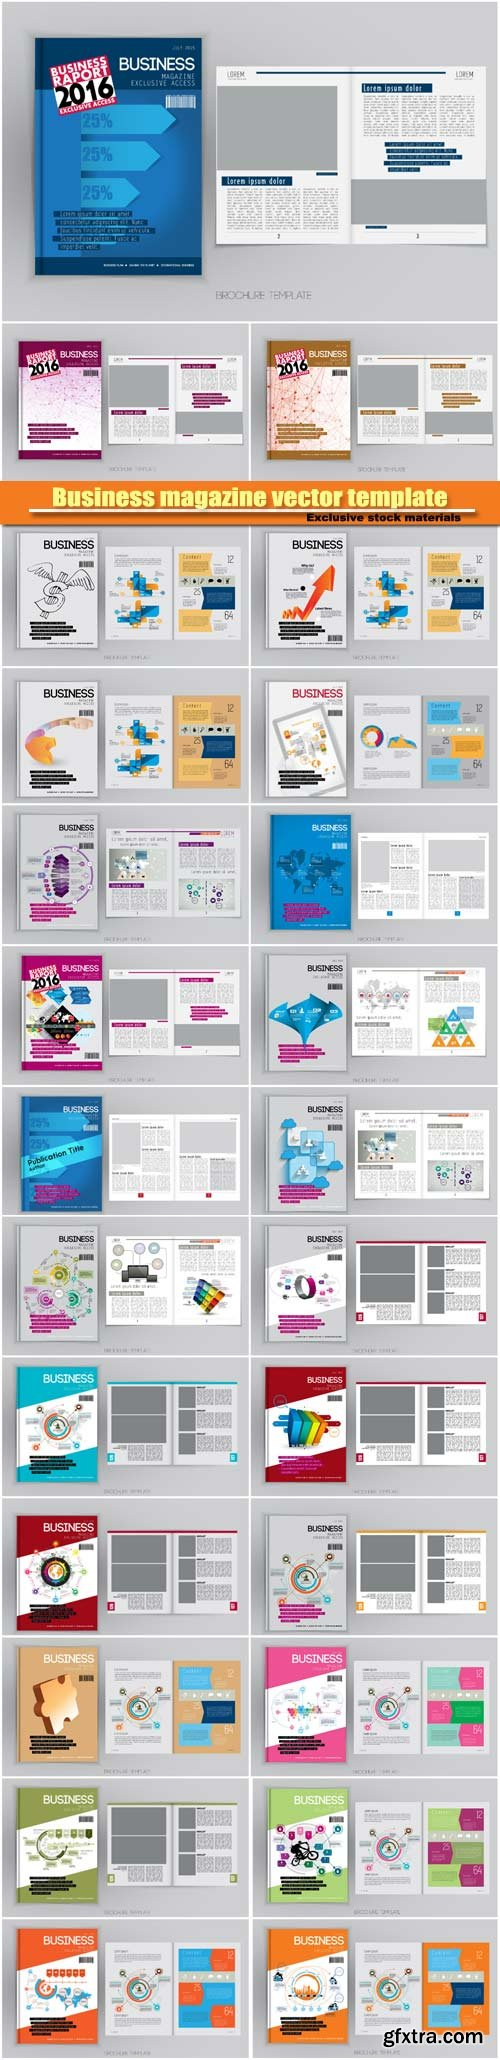 Business magazine exclusive vector template